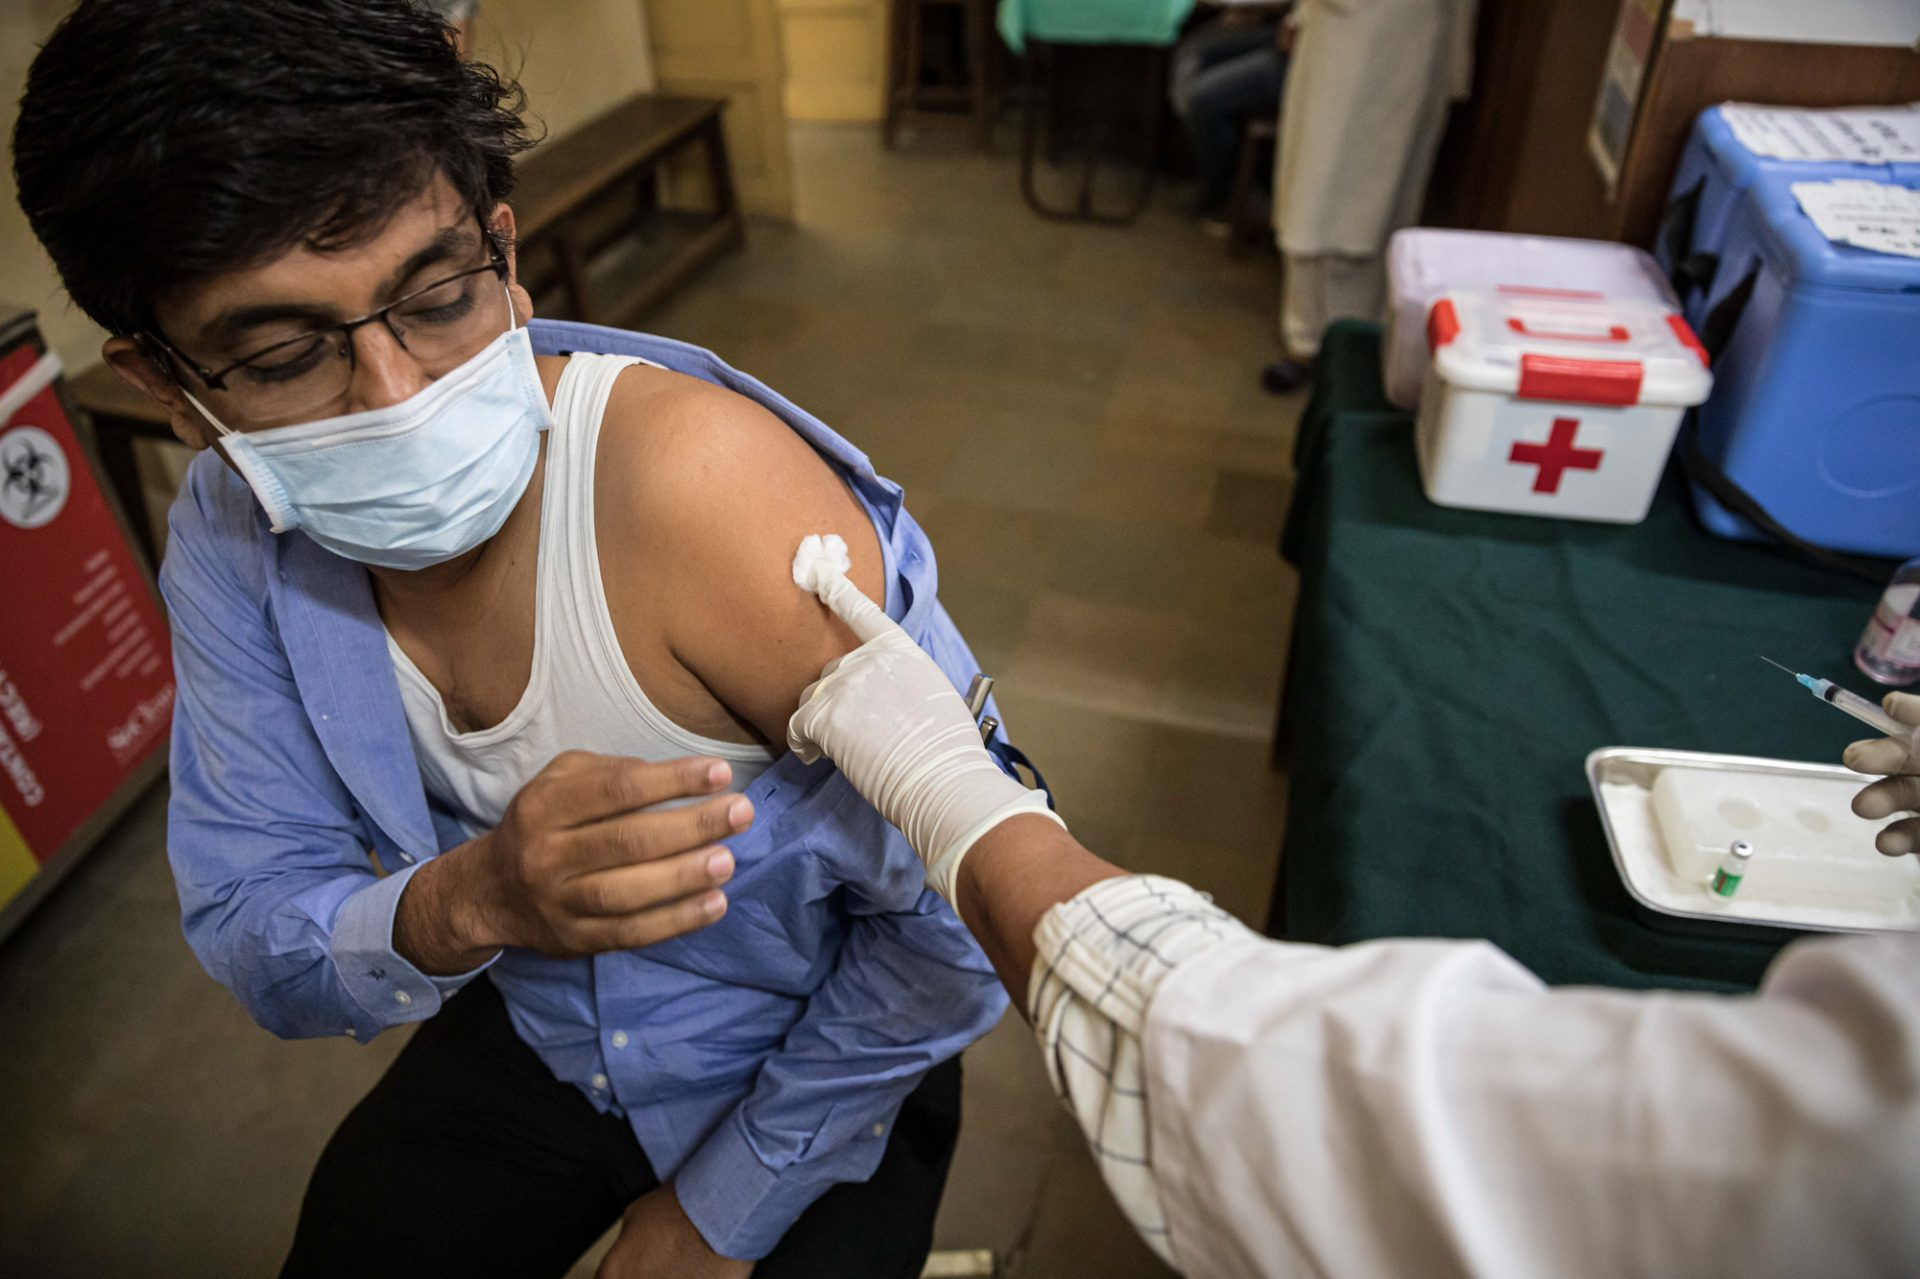 Amit Sonawane, 35, an engineer at a district health office, gets his first vaccine dose in Palghar, India.